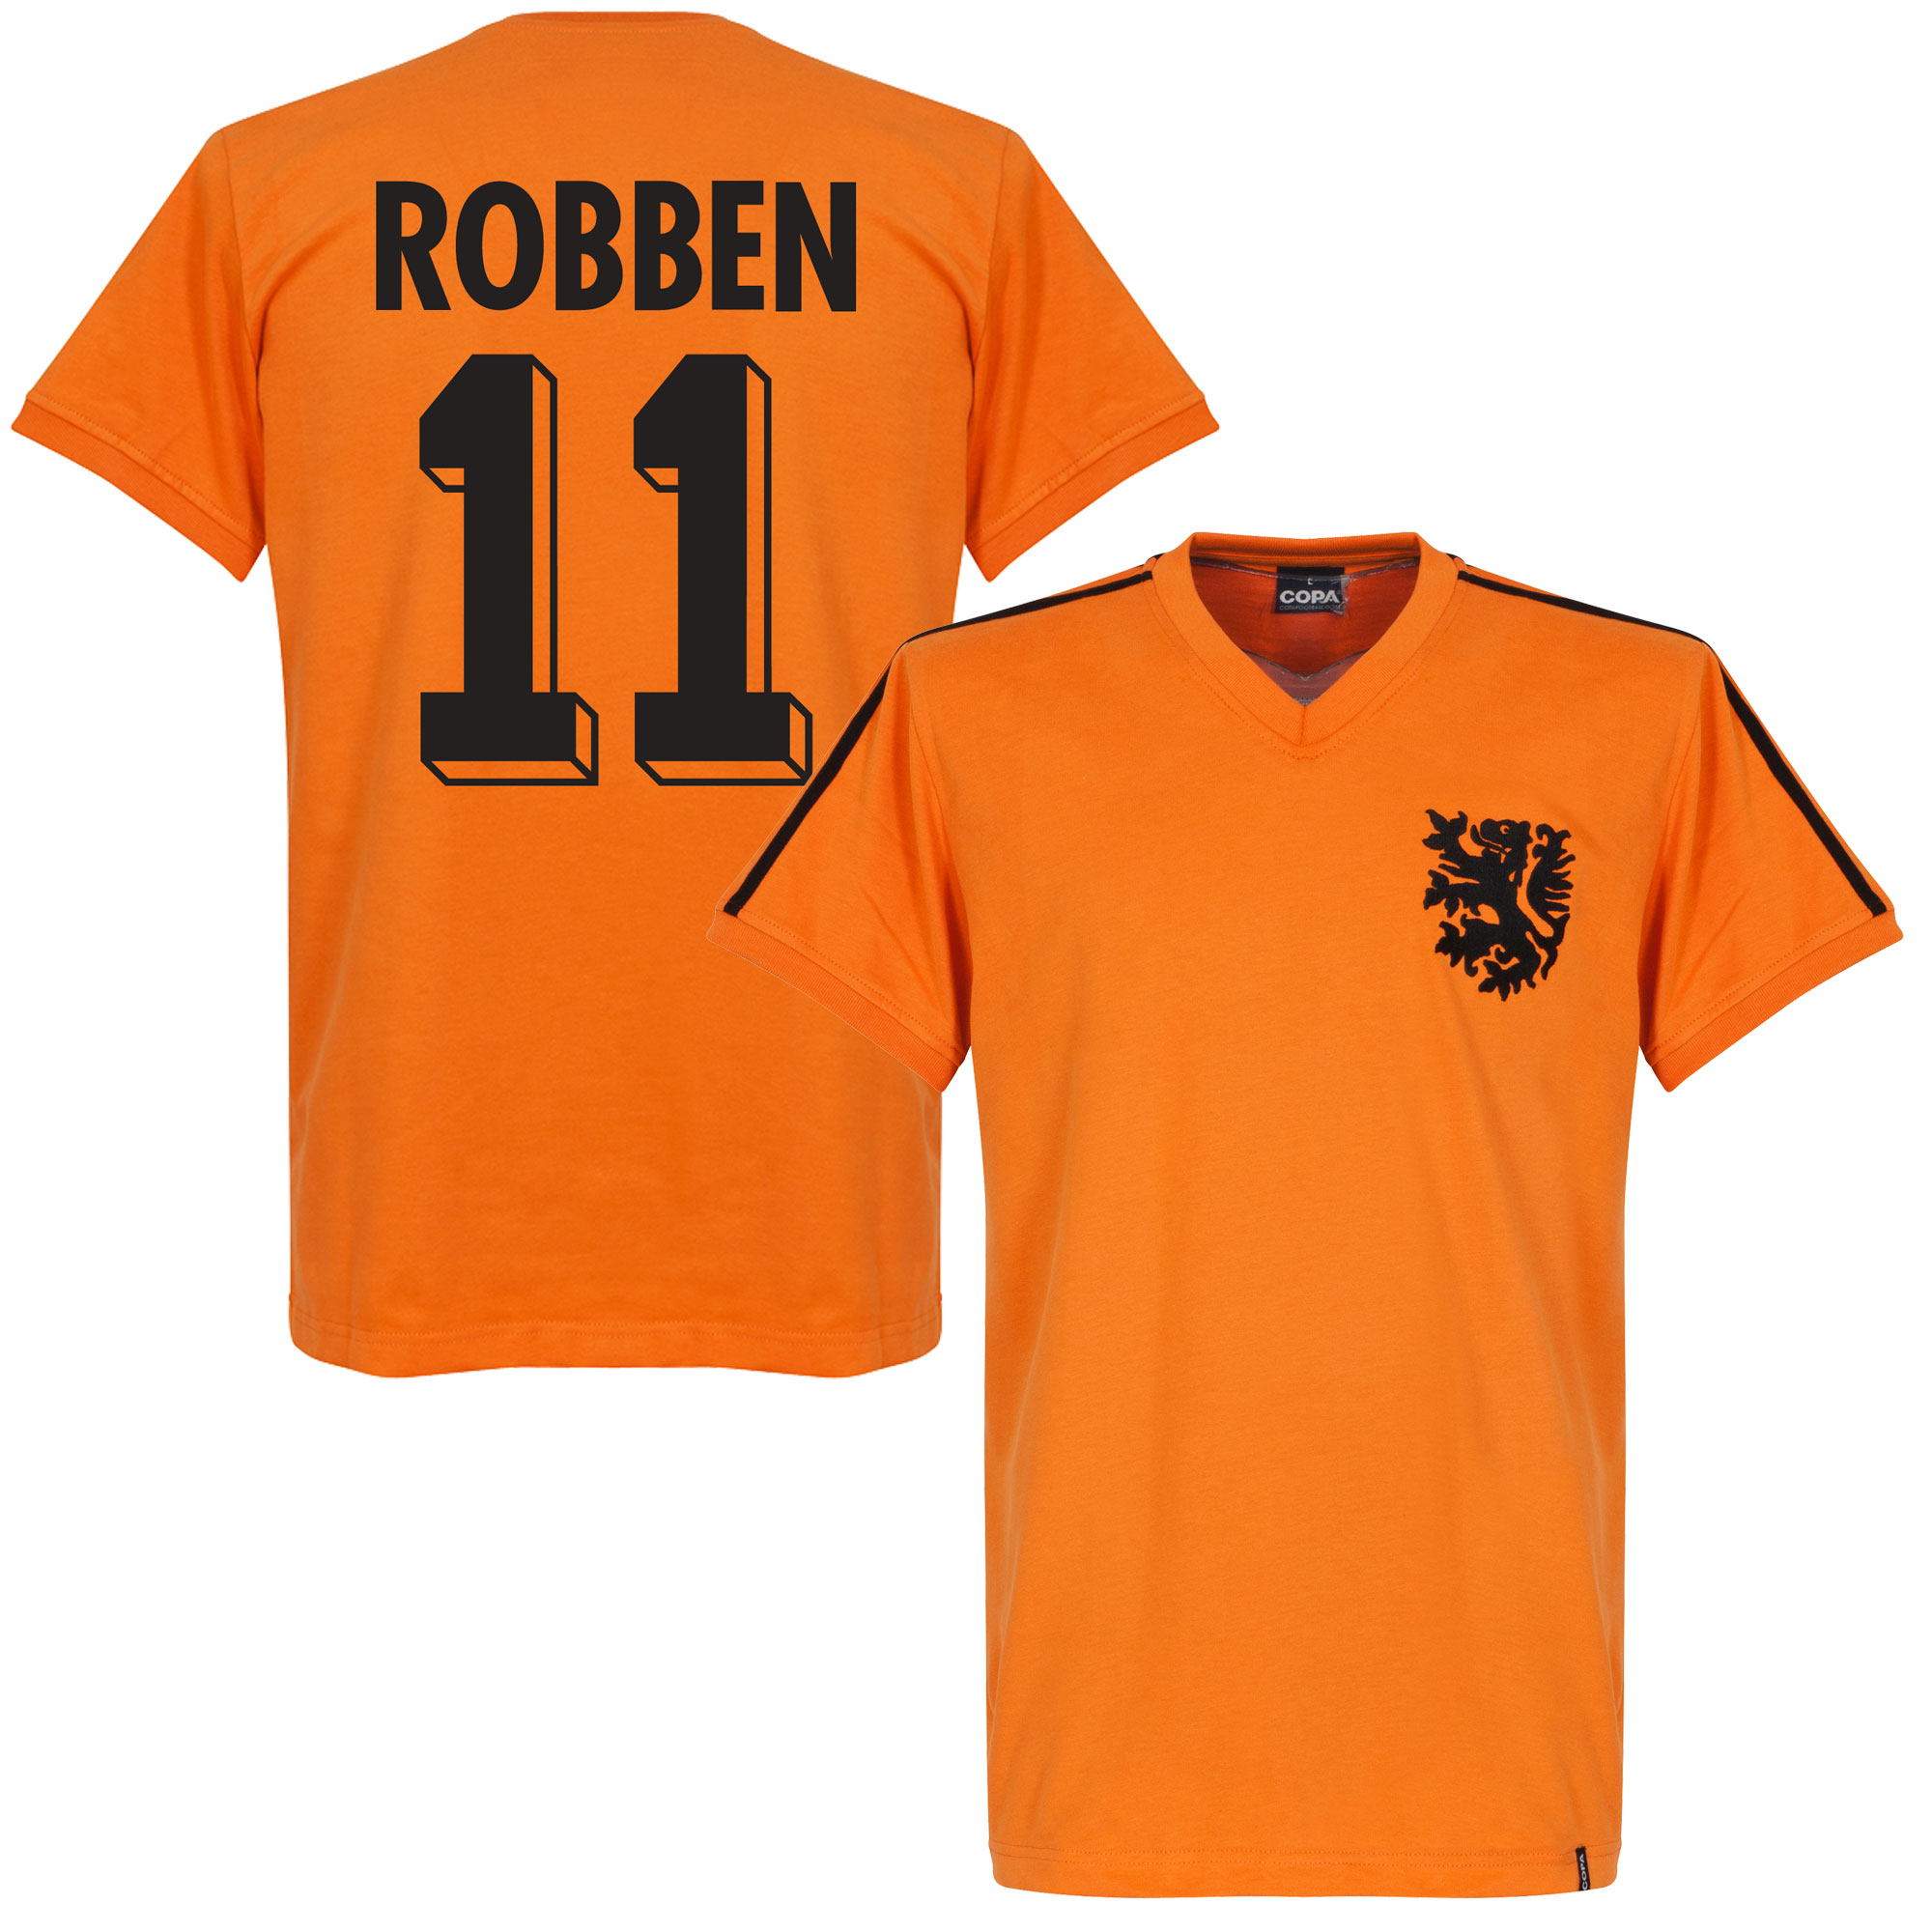 1974 Holland World Cup Home Retro Shirt + Robben 11 - S